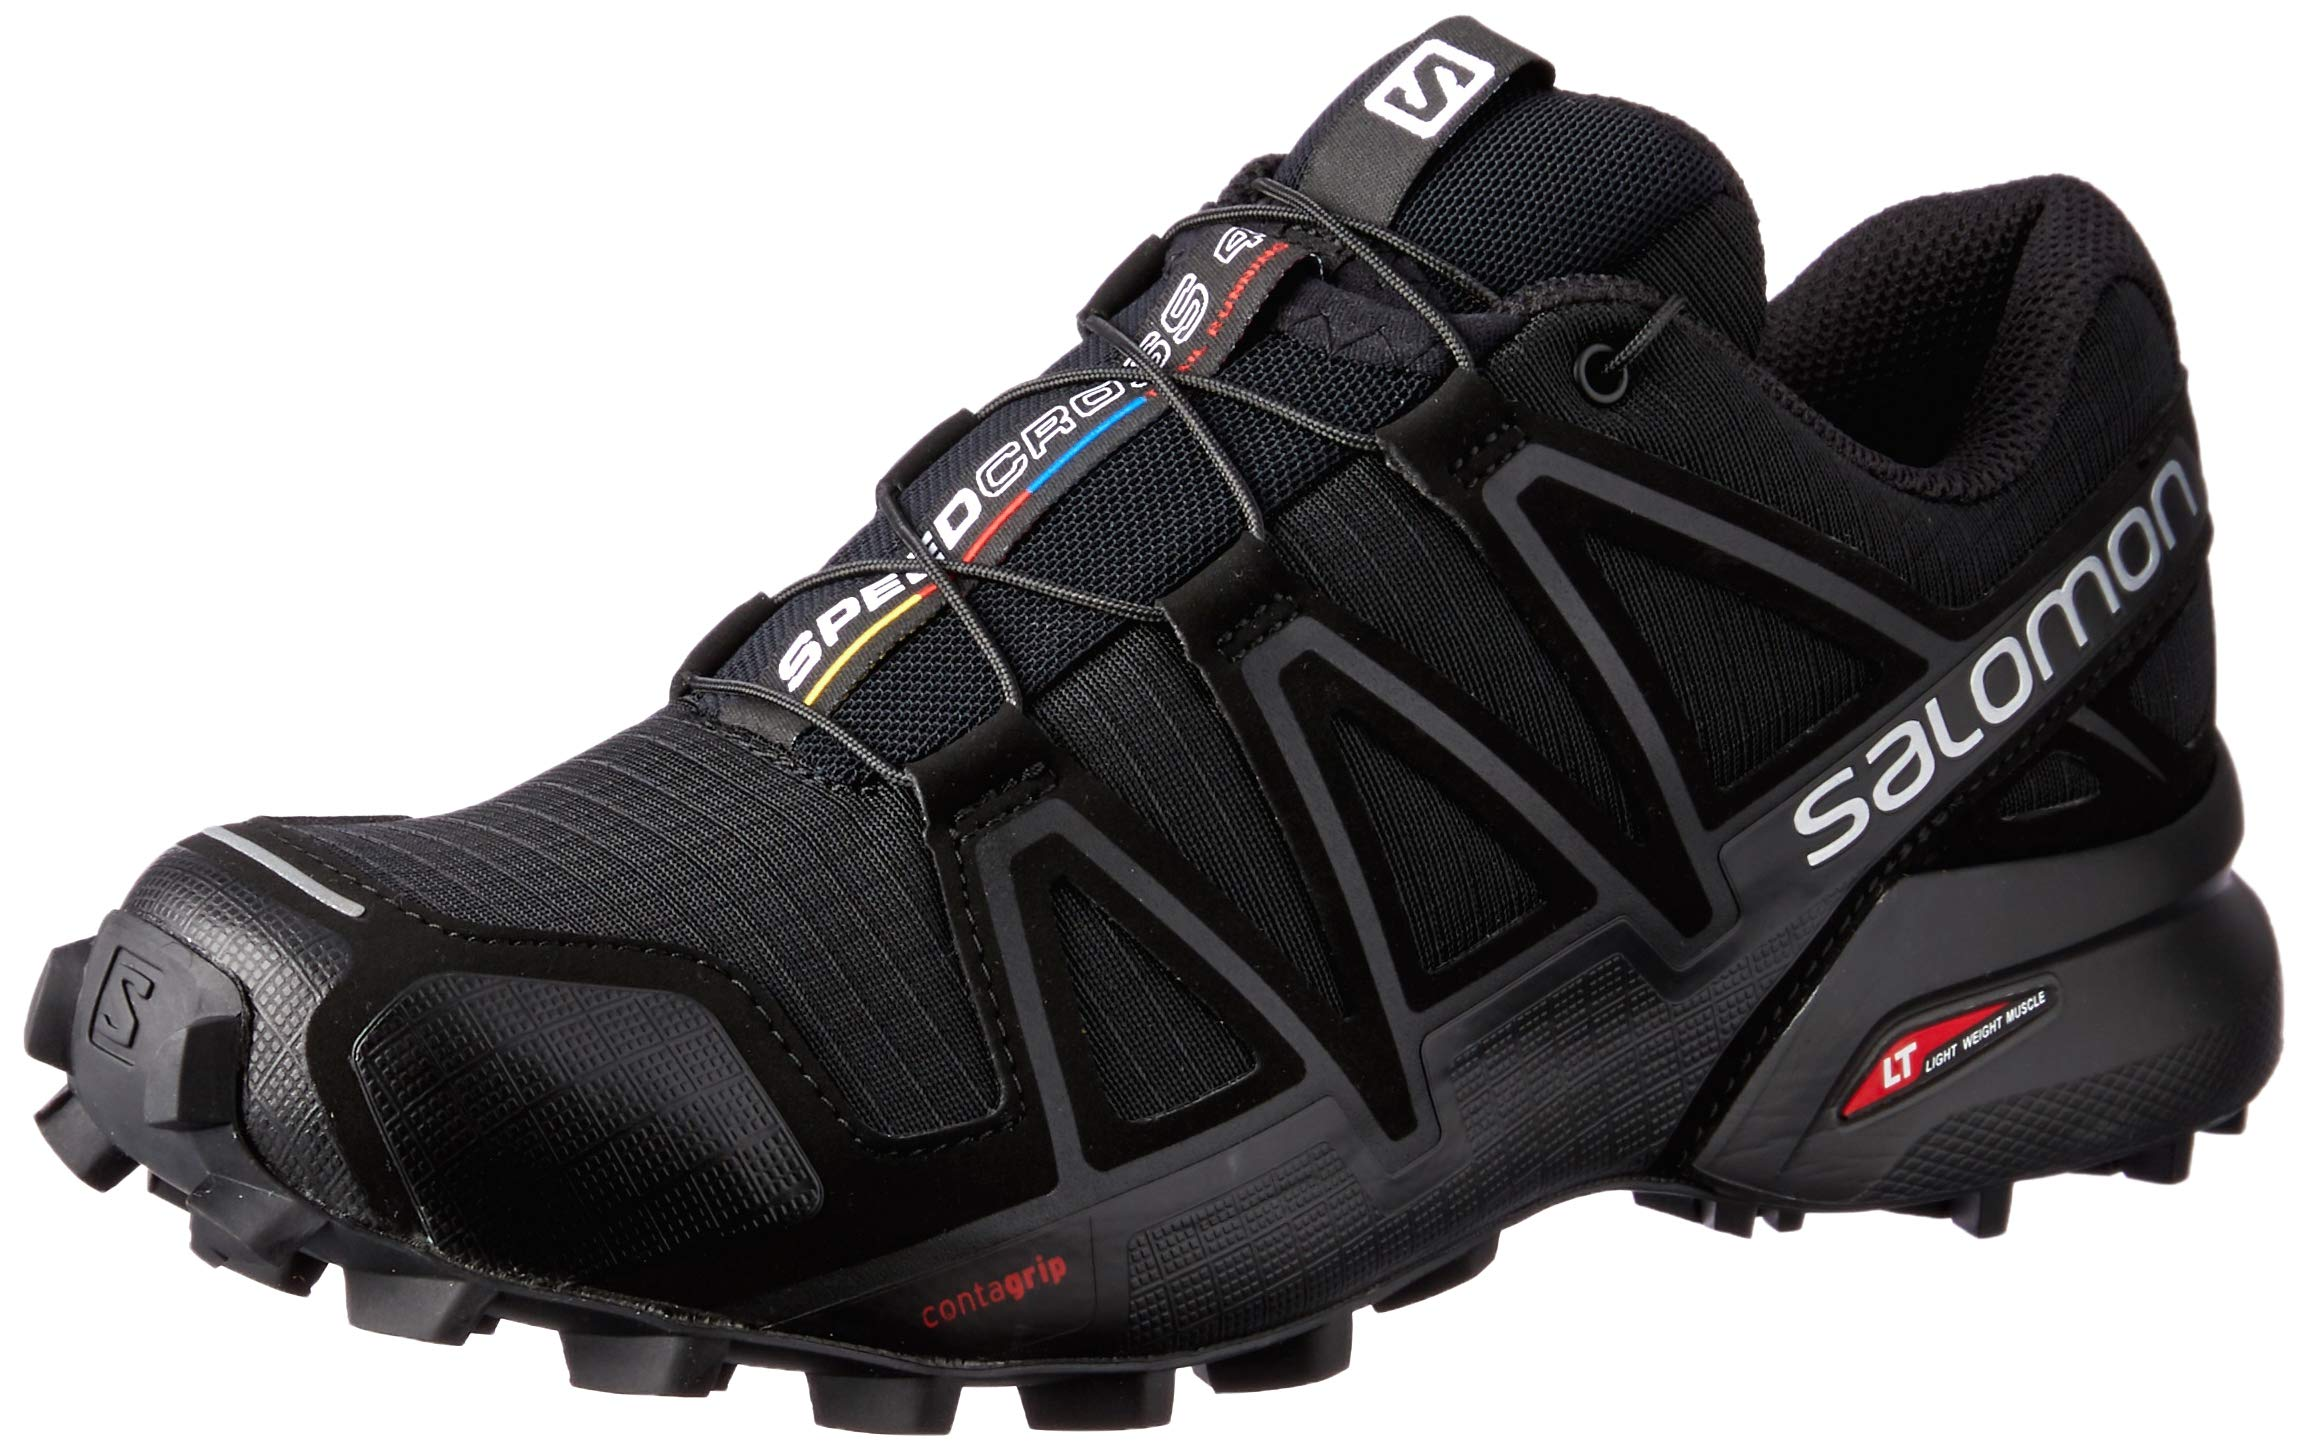 Salomon Women's Speedcross 4 W Trail Runner Black Metallic, 5.5 M US by Salomon (Image #1)